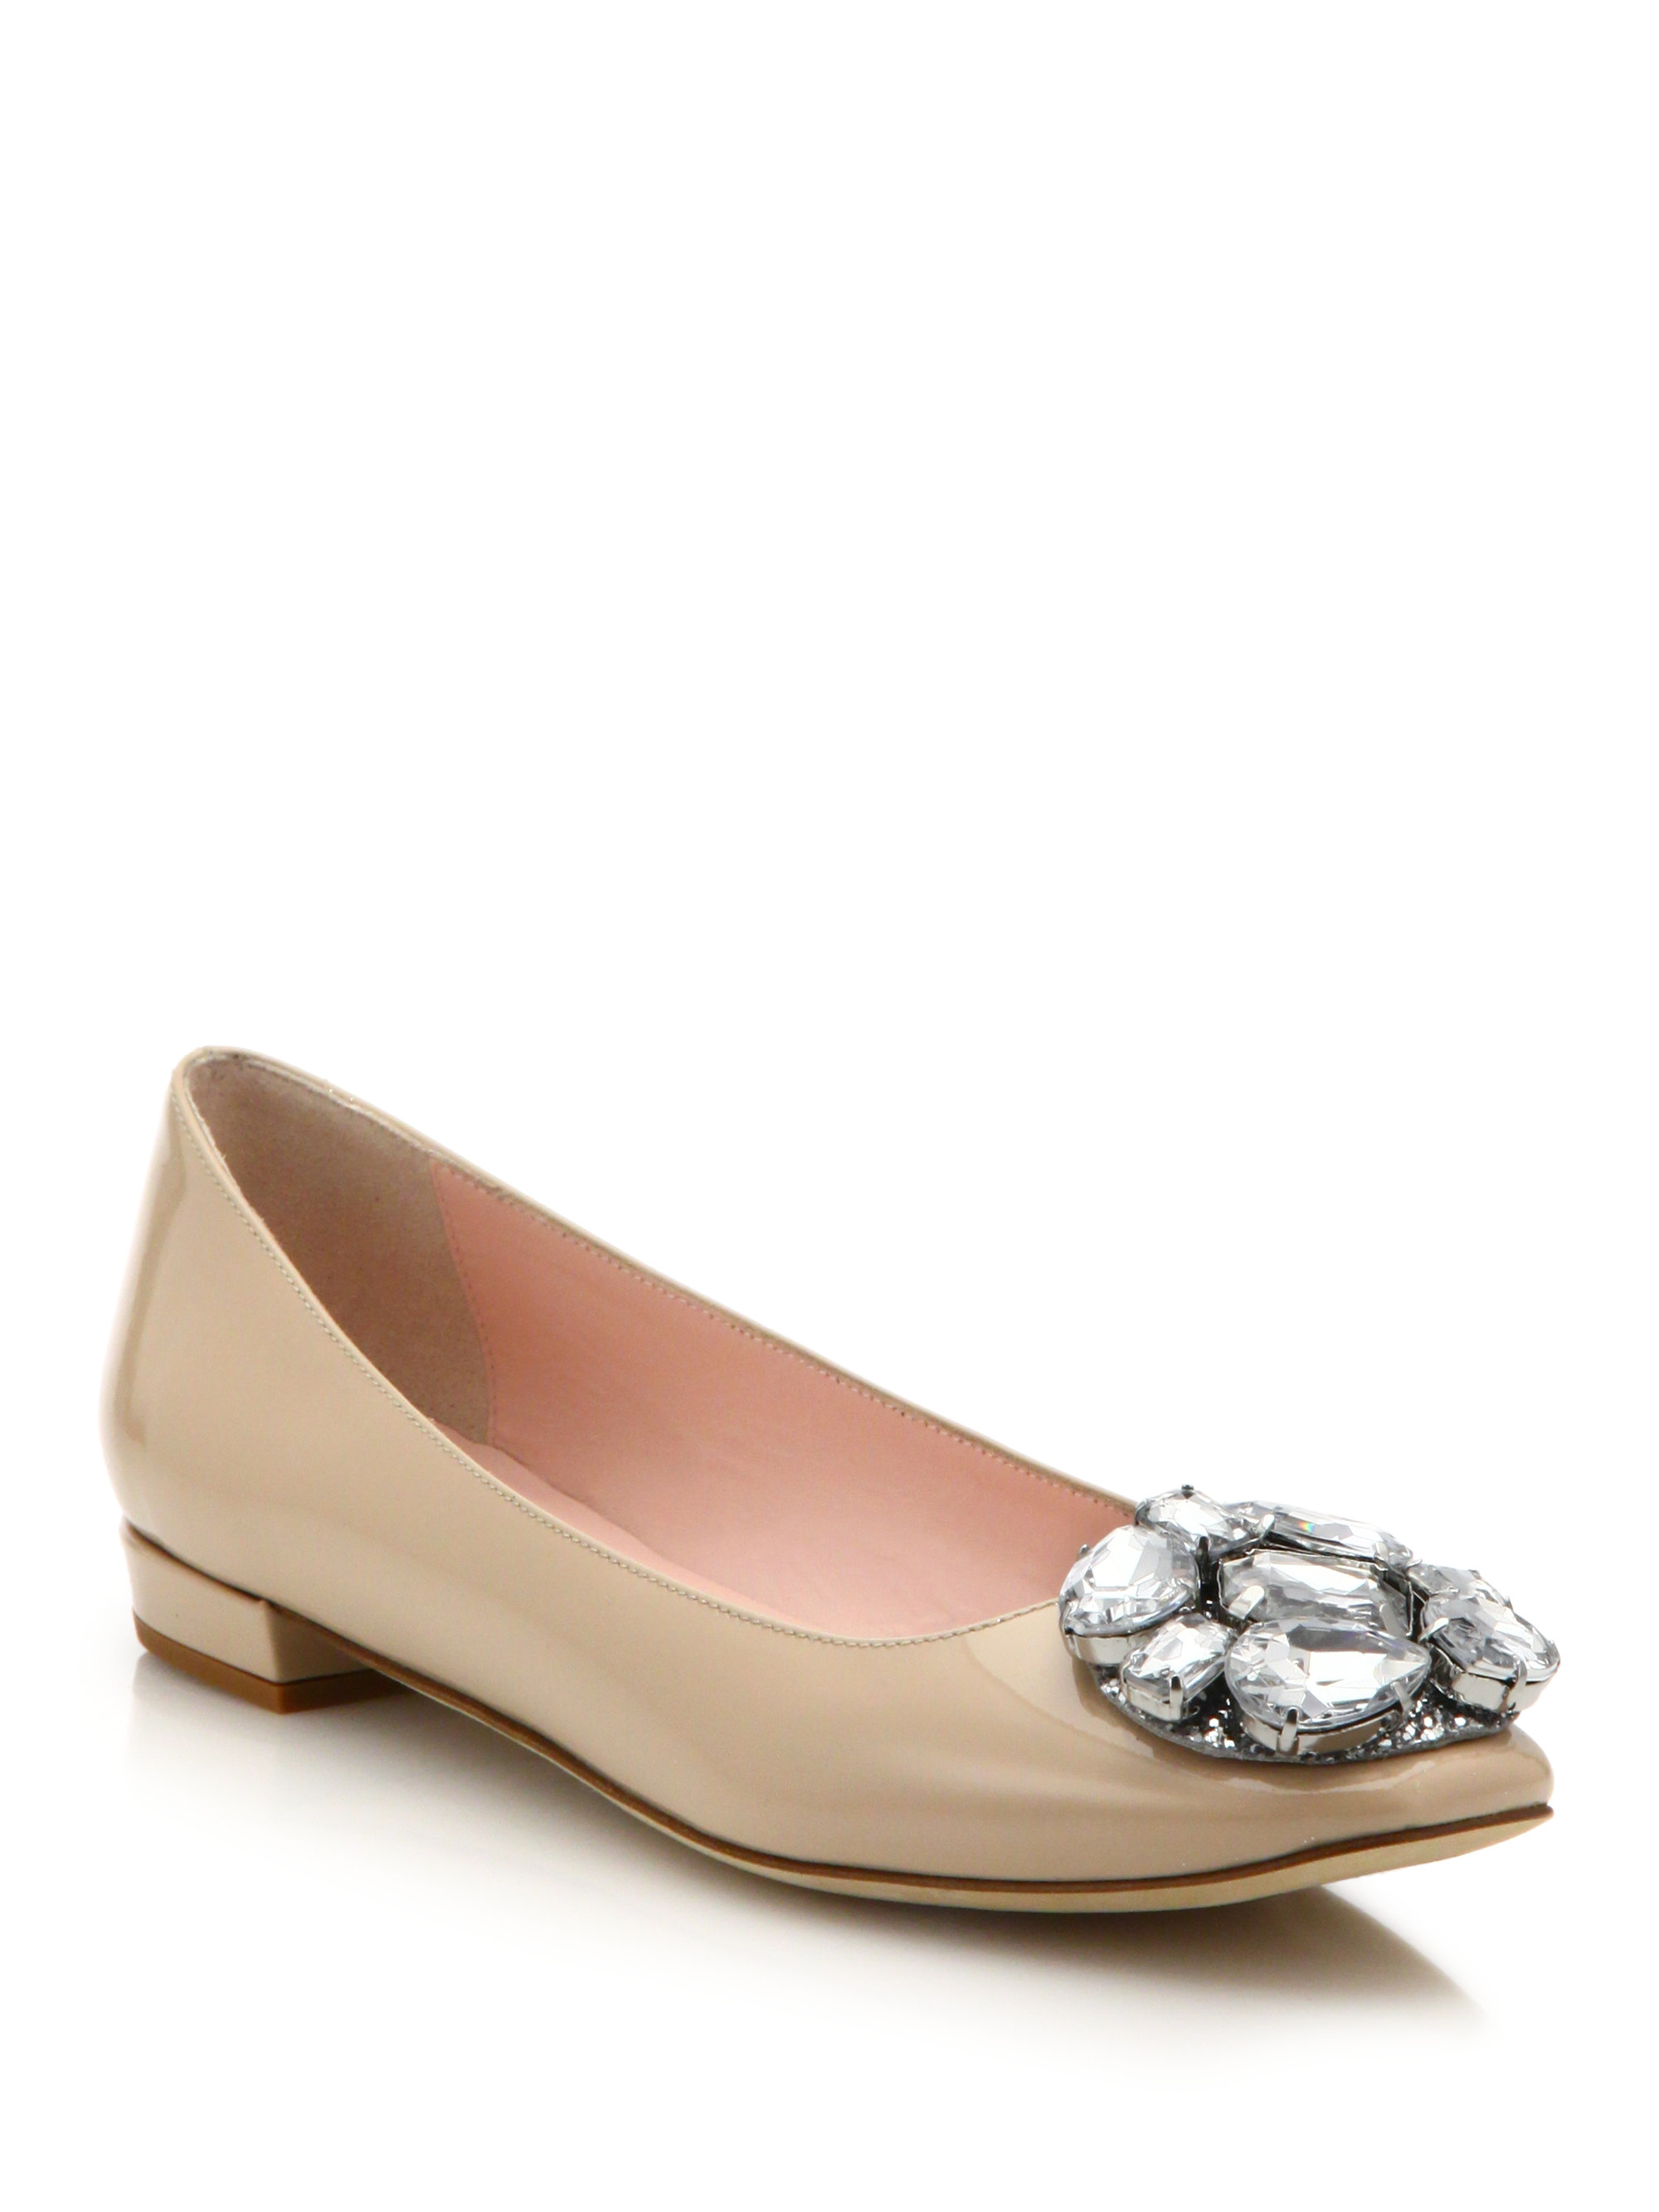 Kate Spade New York Metallic Jewel-Embellished Flats